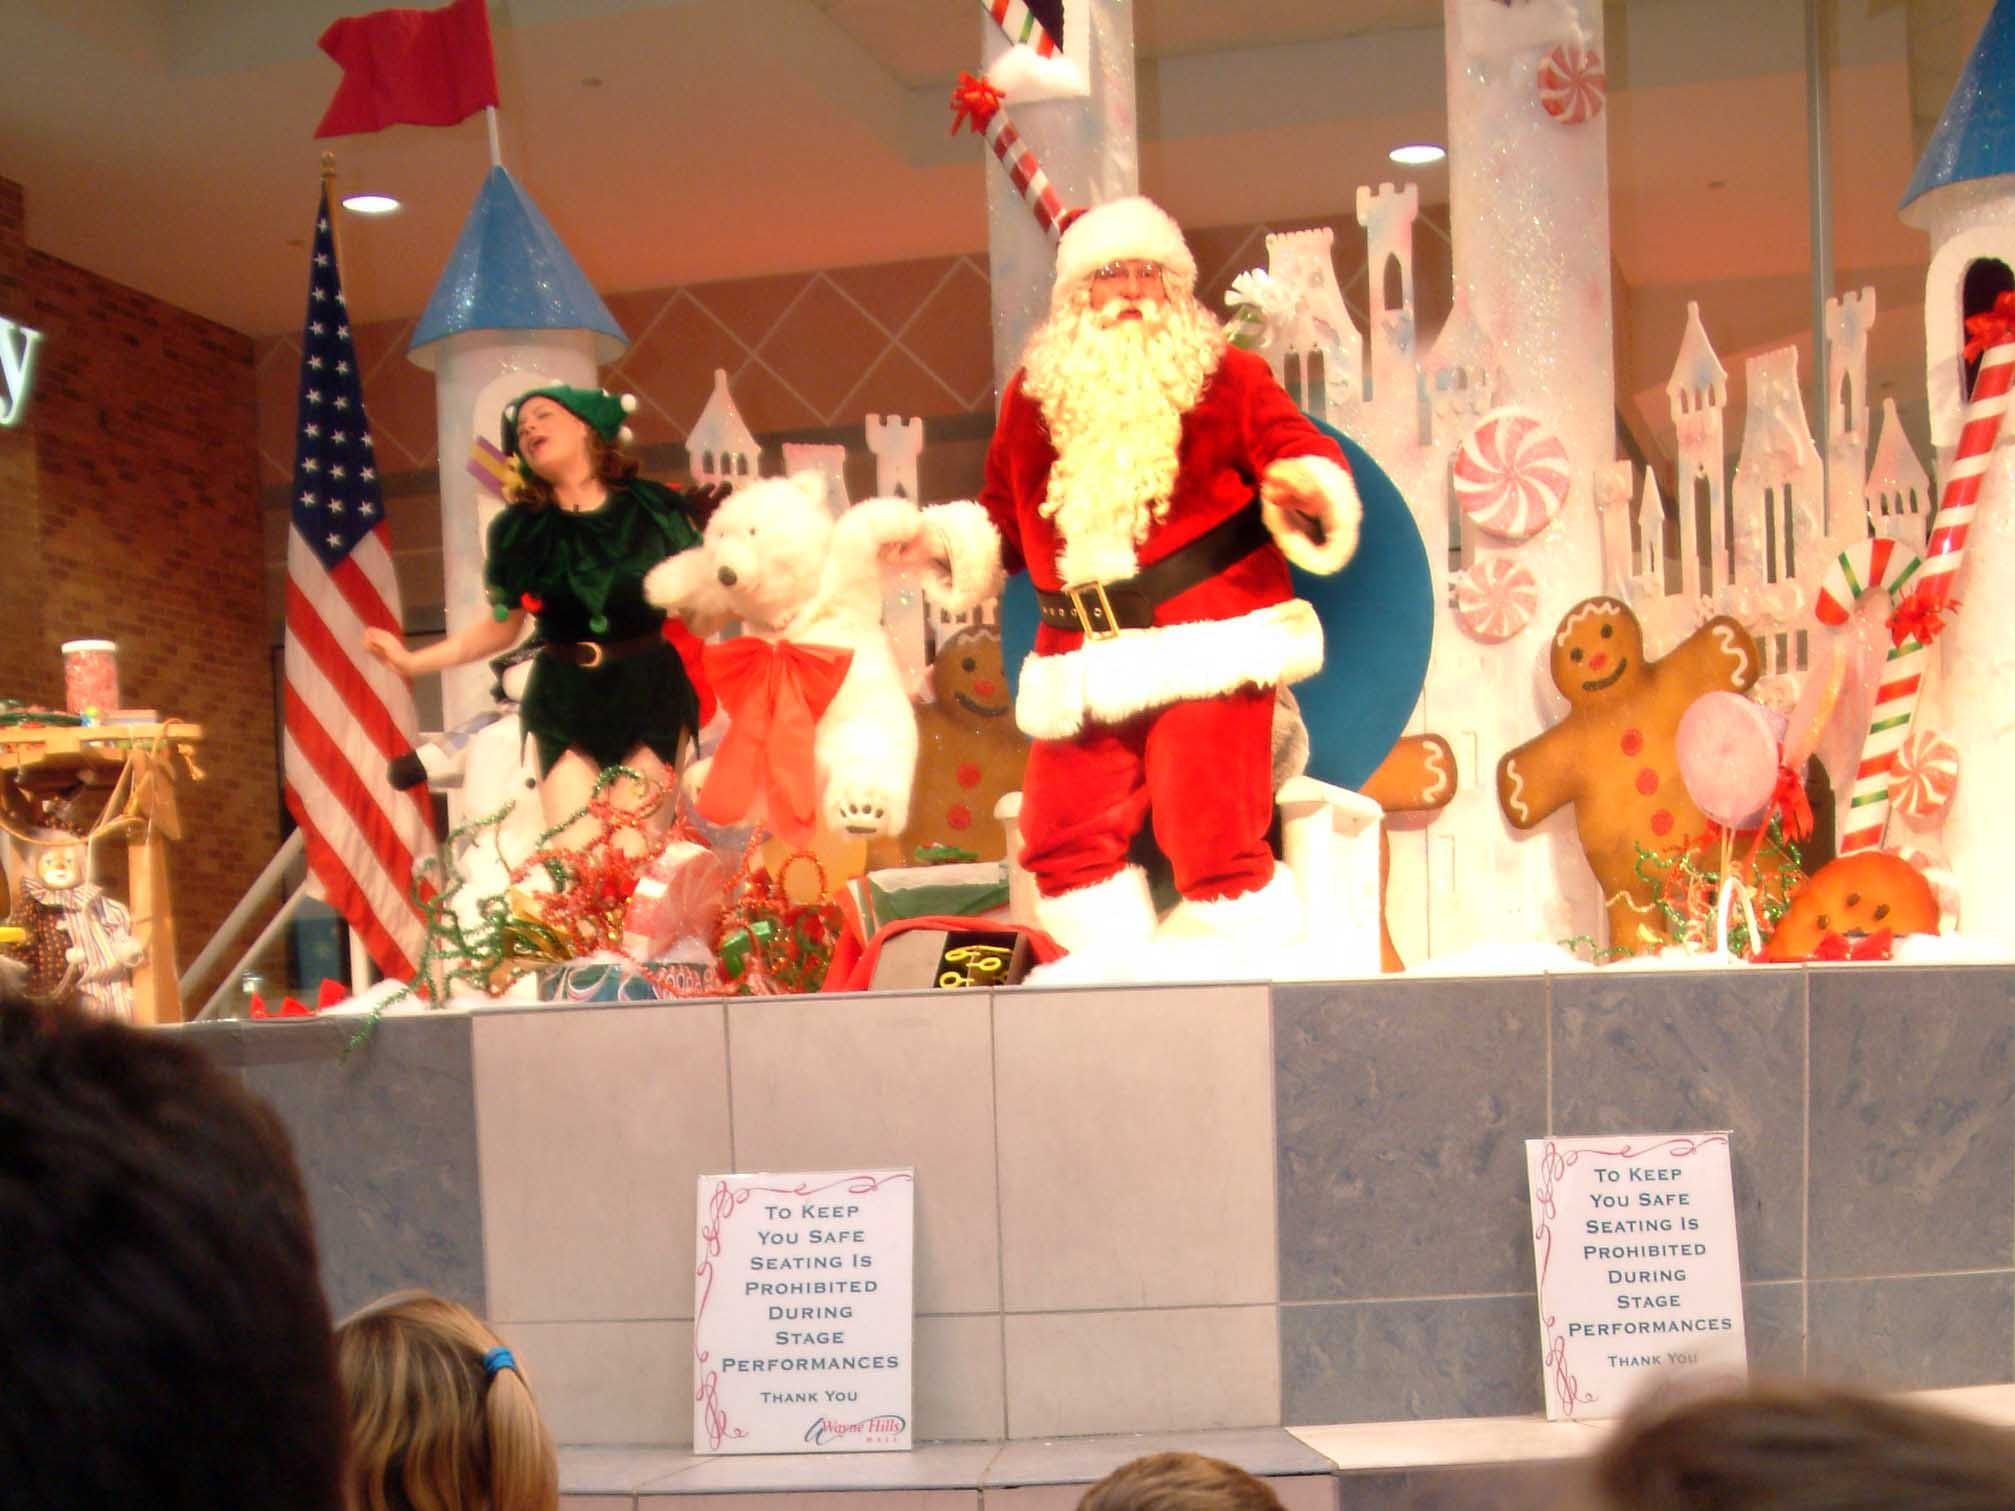 Santa at Wayne Hills Mall, Dec. 9, 2003.